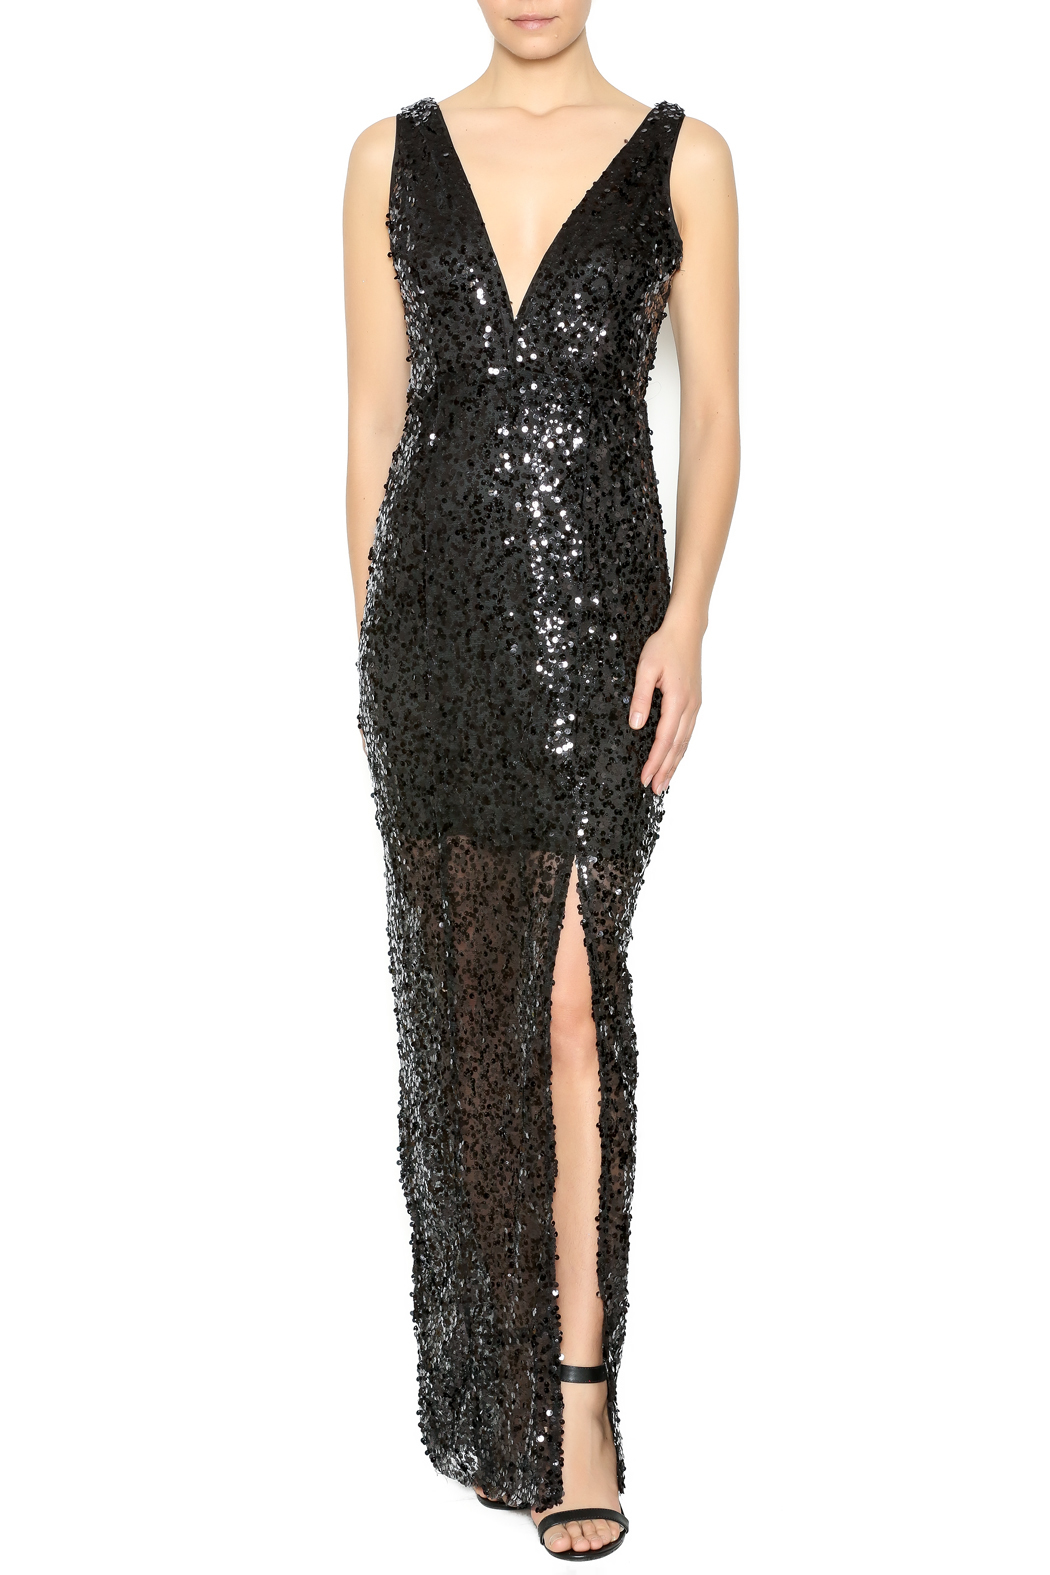 maniju Black Sequin Gown from New York by Dor L\'Dor — Shoptiques